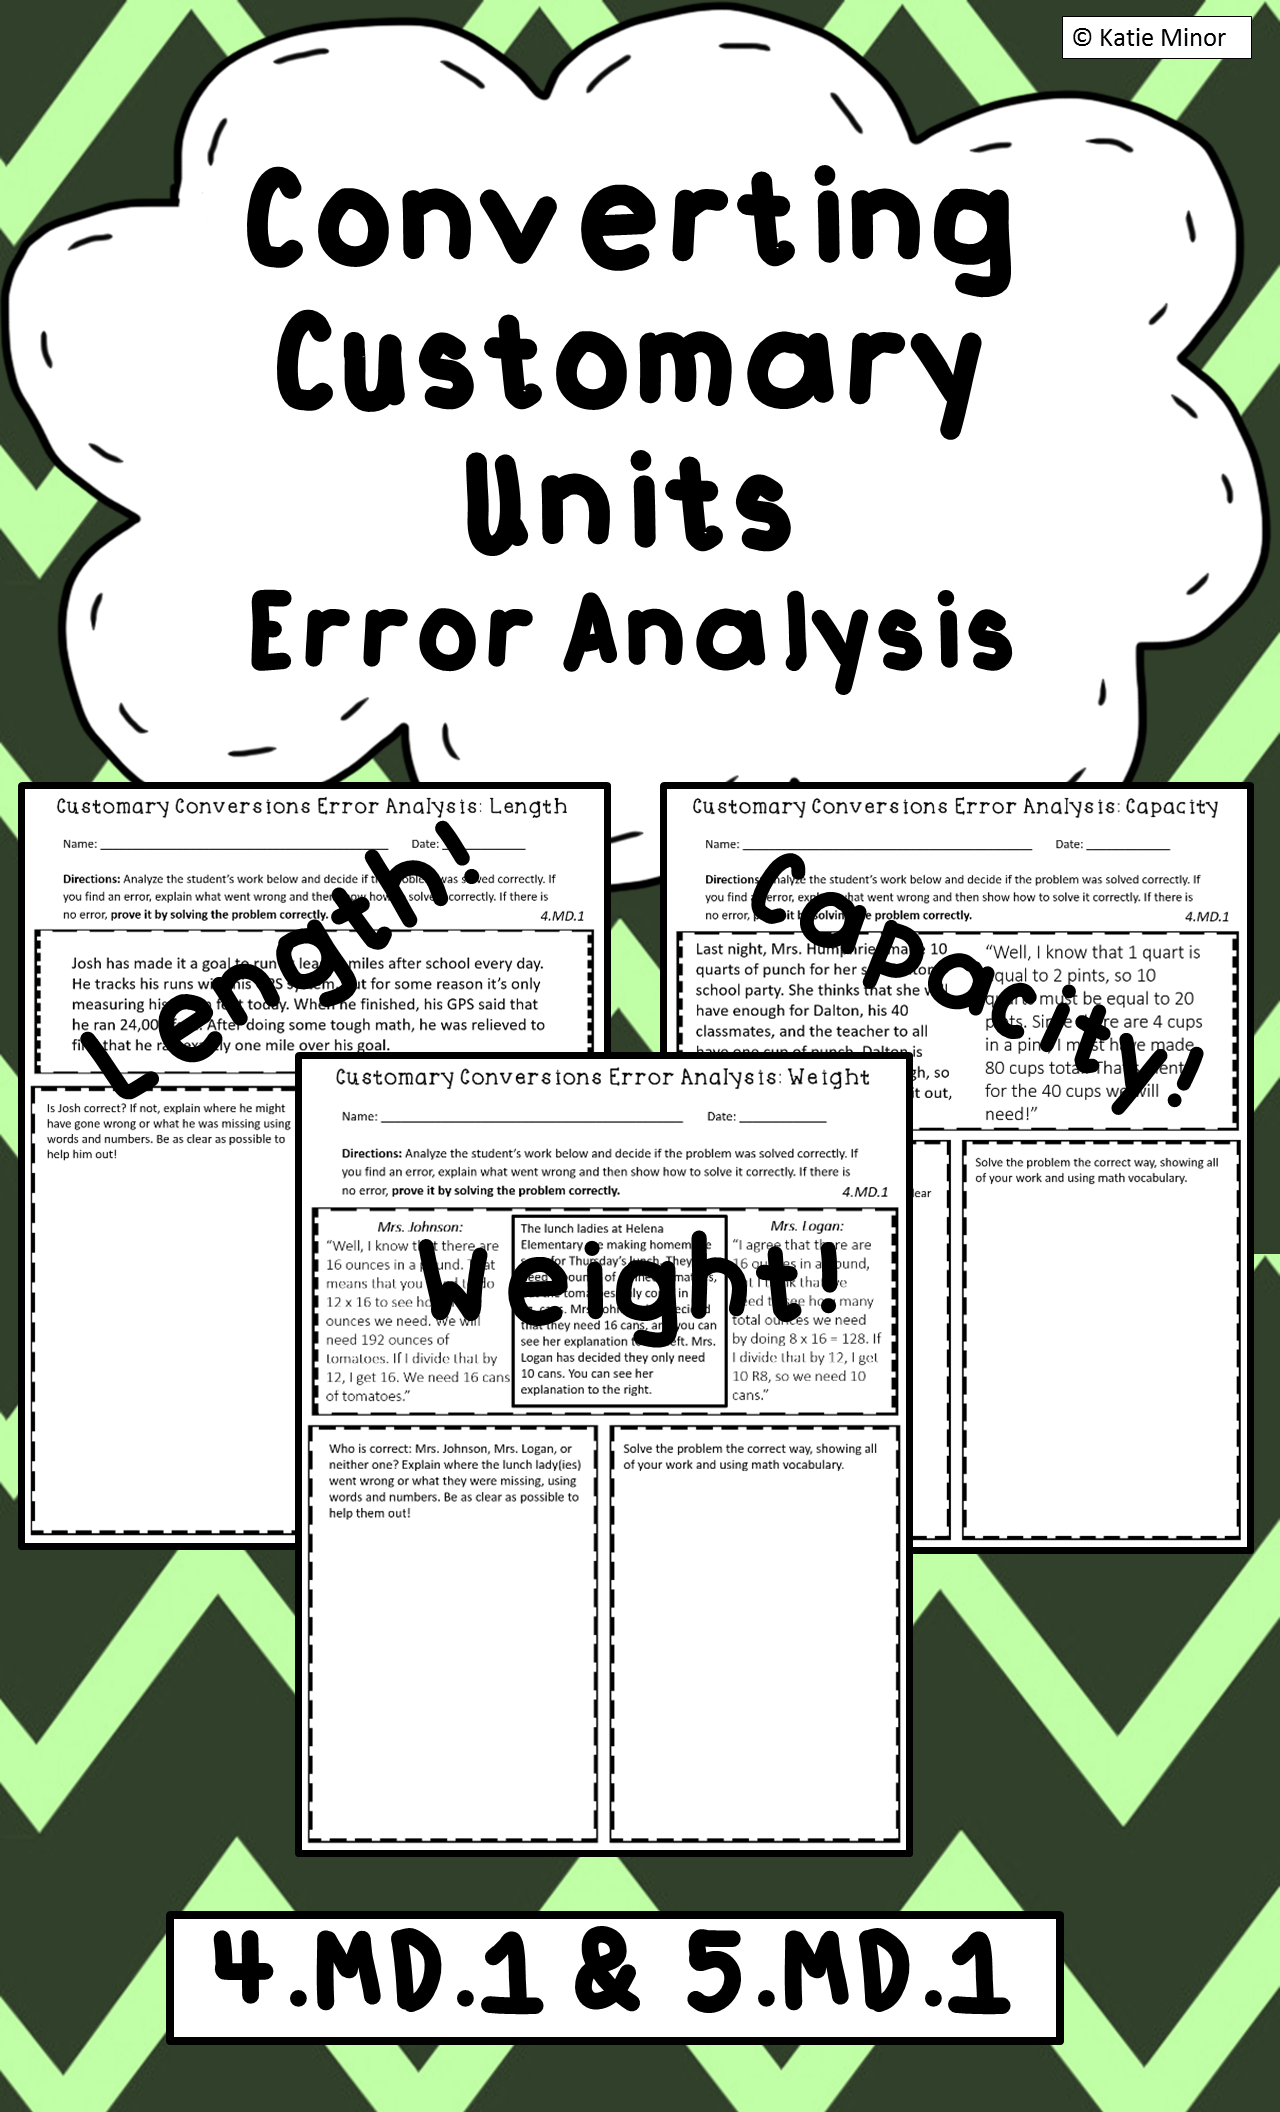 Converting Metric Units Of Measurement Errorysis 4